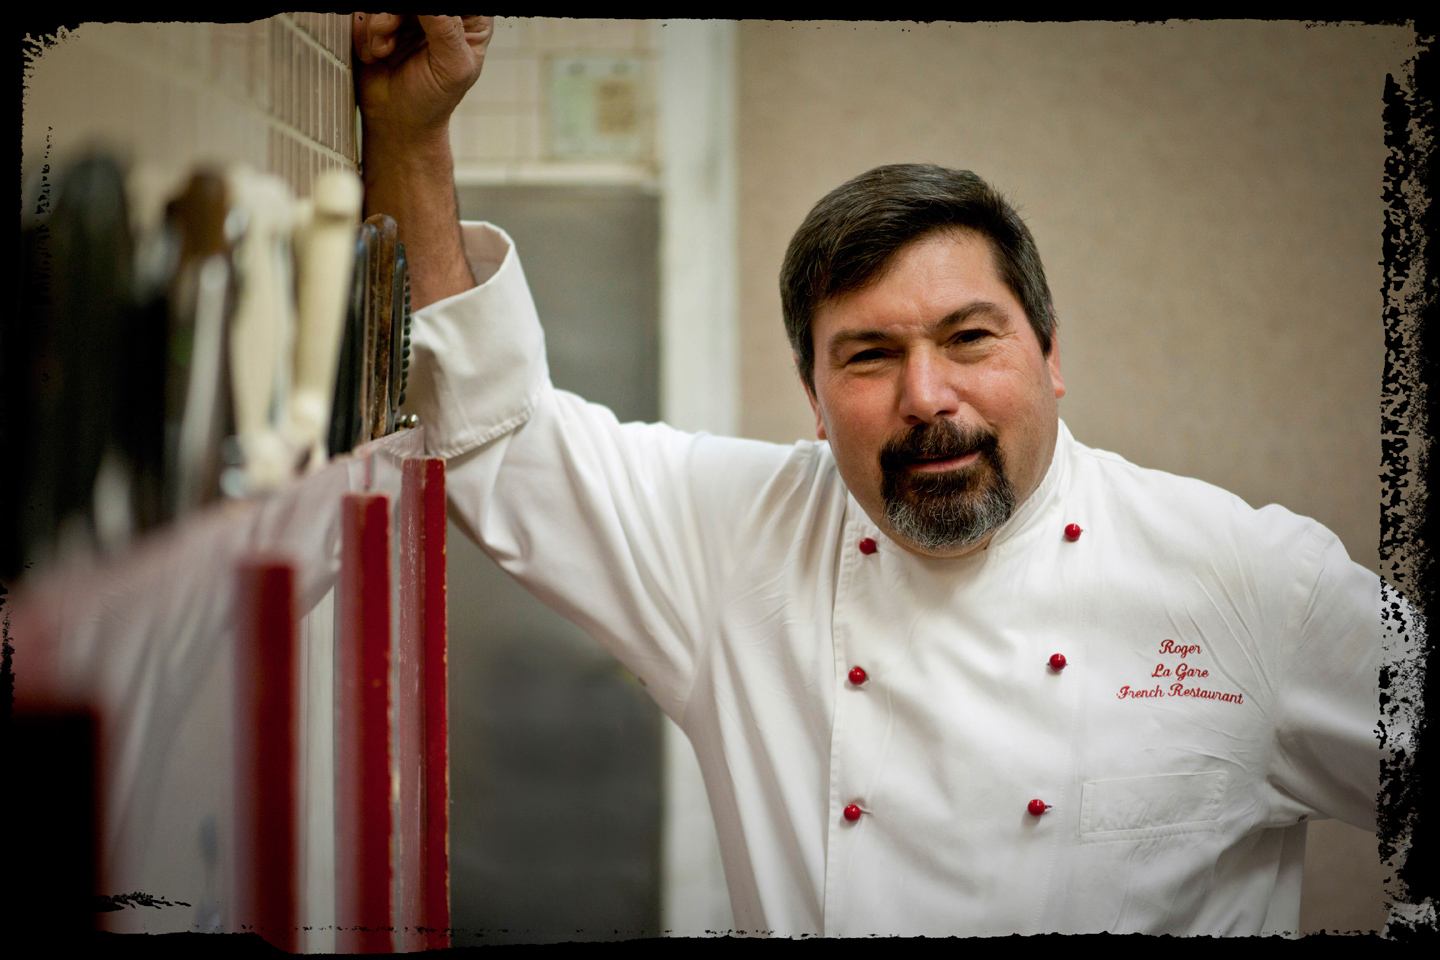 Chef Portrait This Week S Pick Timm Eubanks Photography